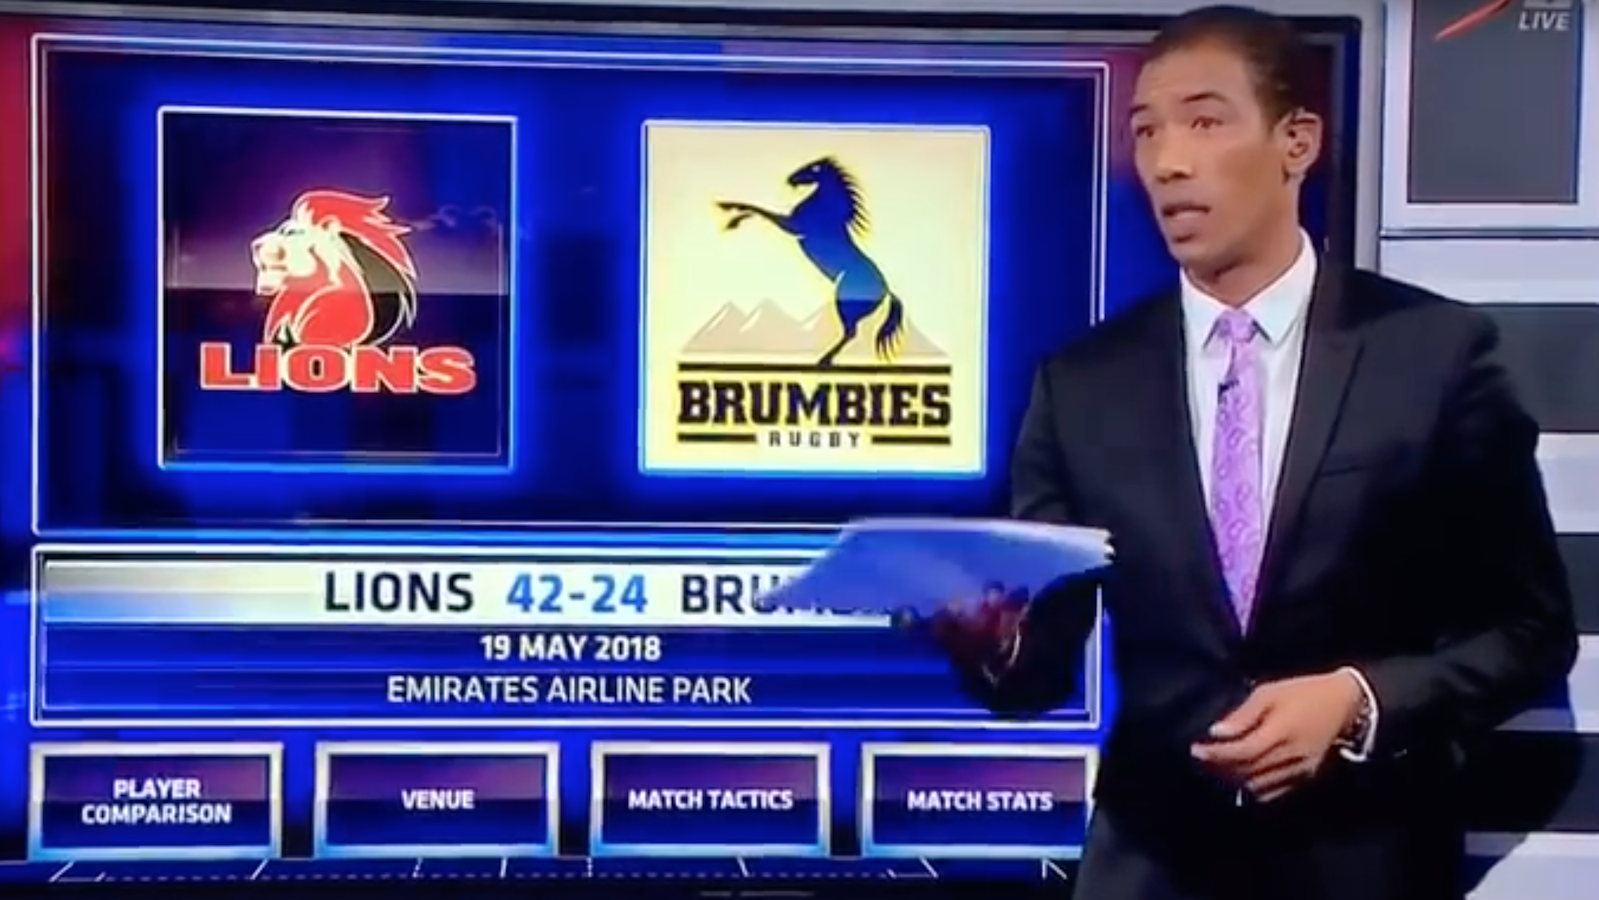 Ashwin Willemse: His SuperSport walkout sparked debate about racism